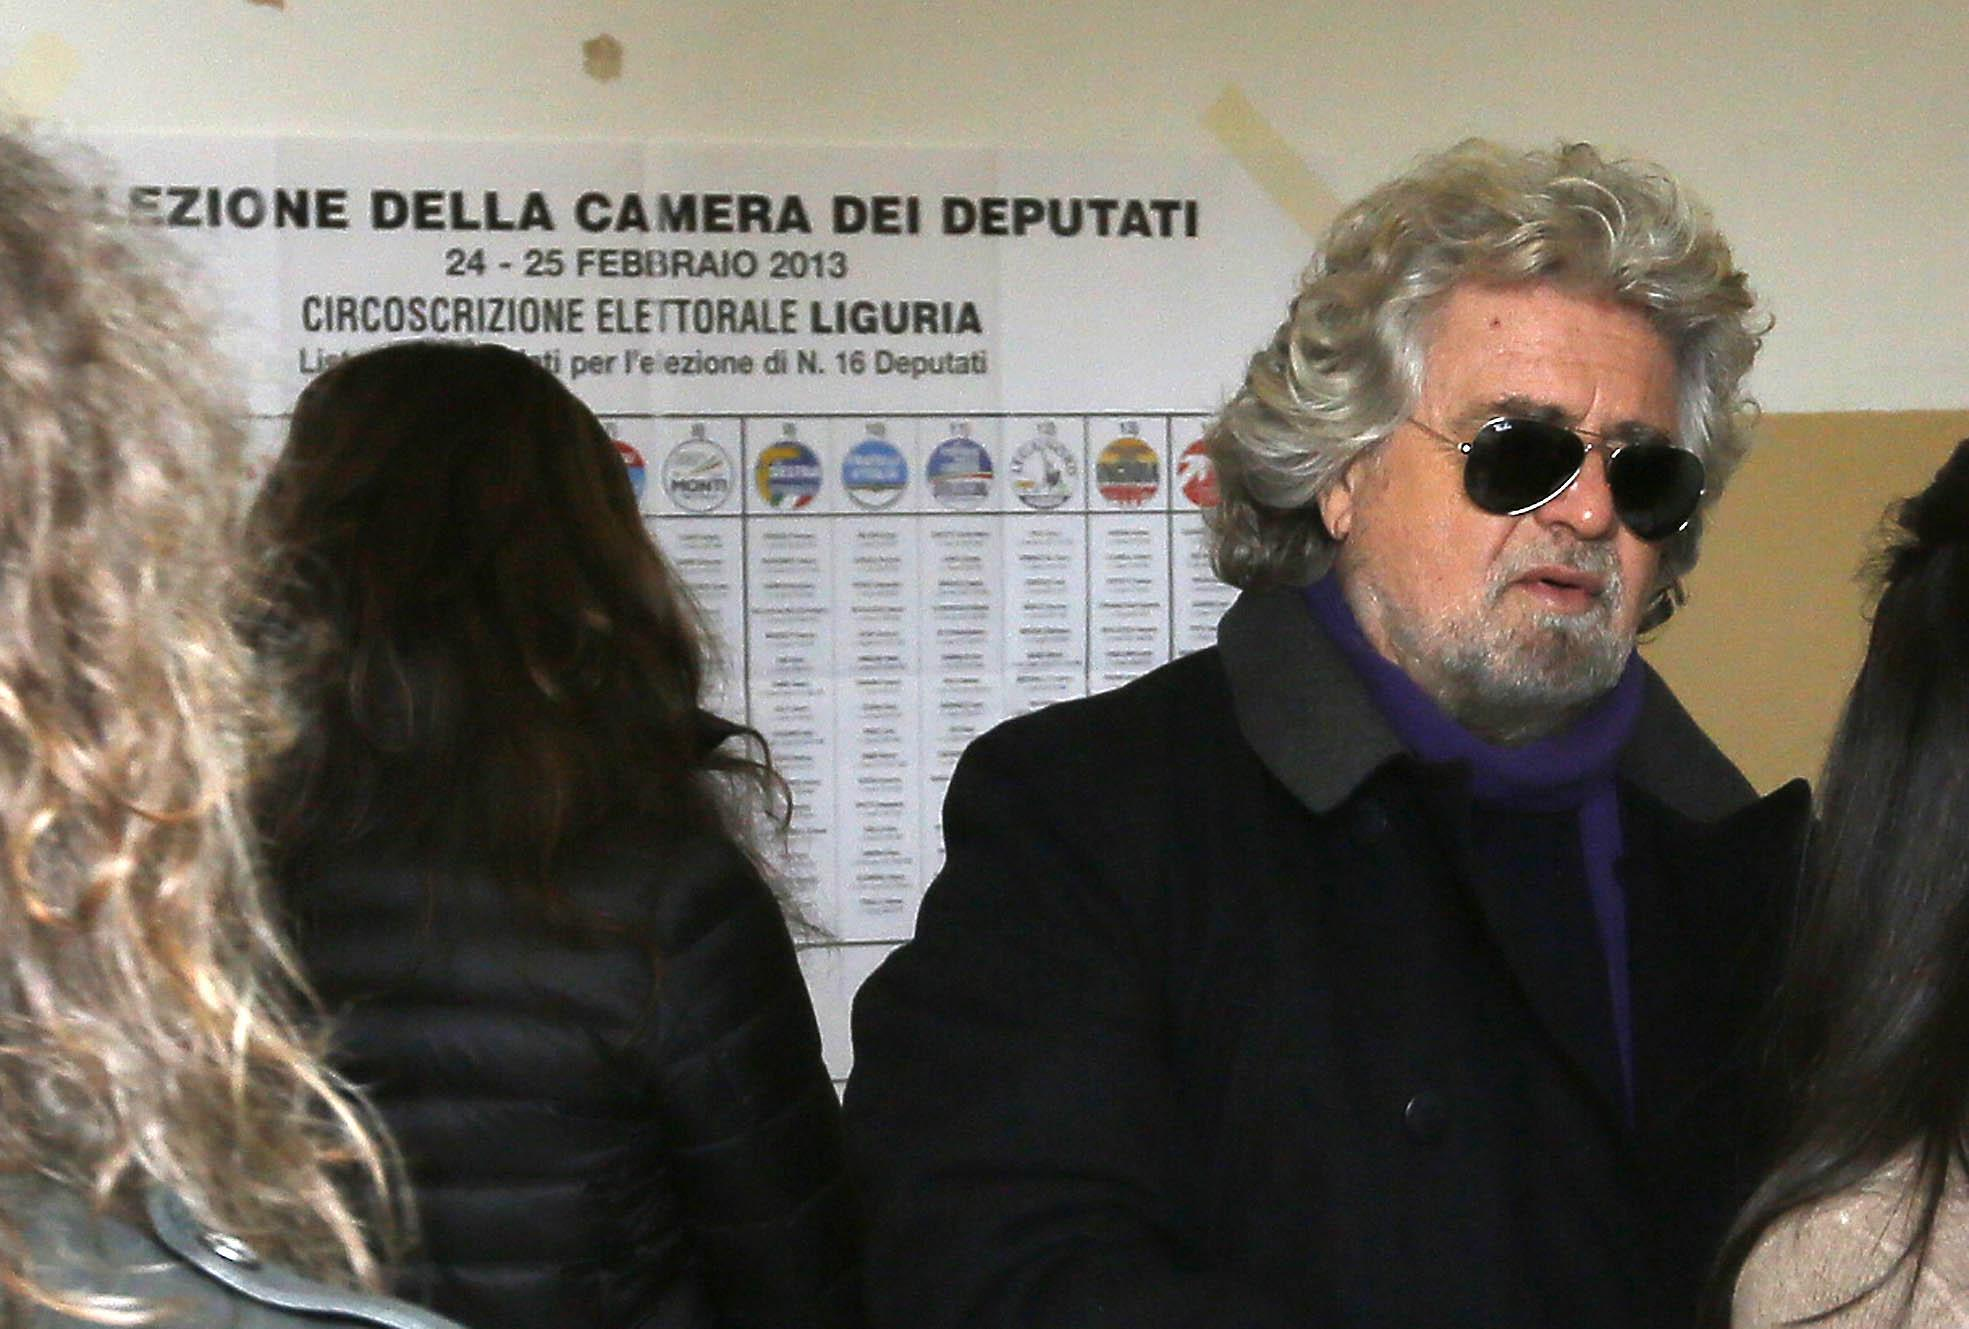 Five Stars movement's leader and former comedian Beppe Grillo arrives to vote at a polling station in St. Ilario near Genova on Feb. 25, 2013.